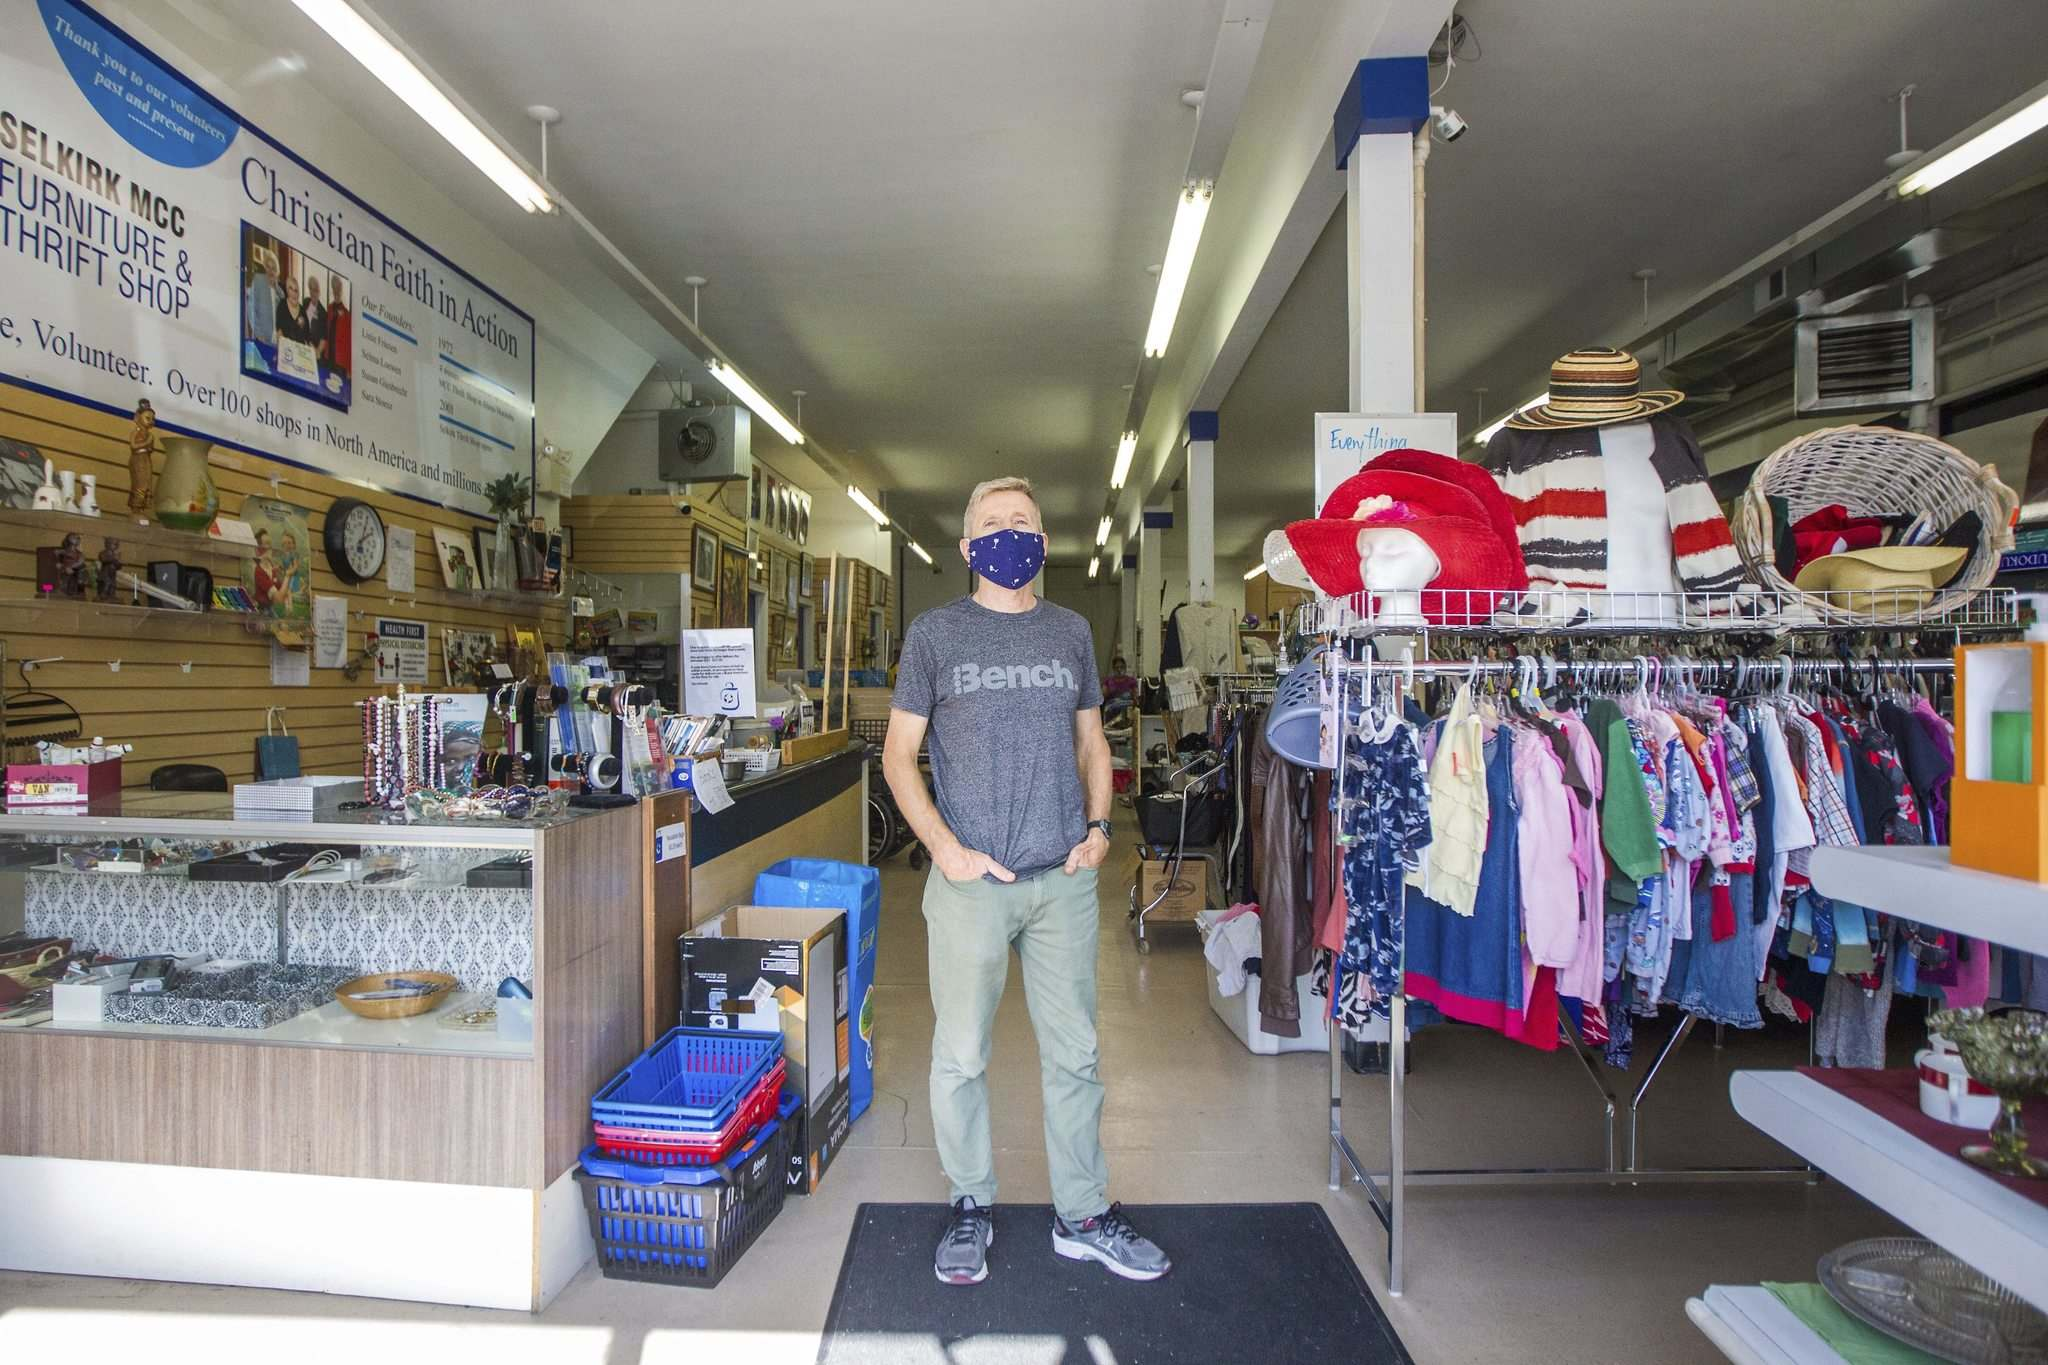 MCC Thrift Store manager Karl Langelotz says sales have been much the same at the Selkirk Avenue shop despite a reduction in operating hours. (Mikaela MacKenzie / Winnipeg Free Press)